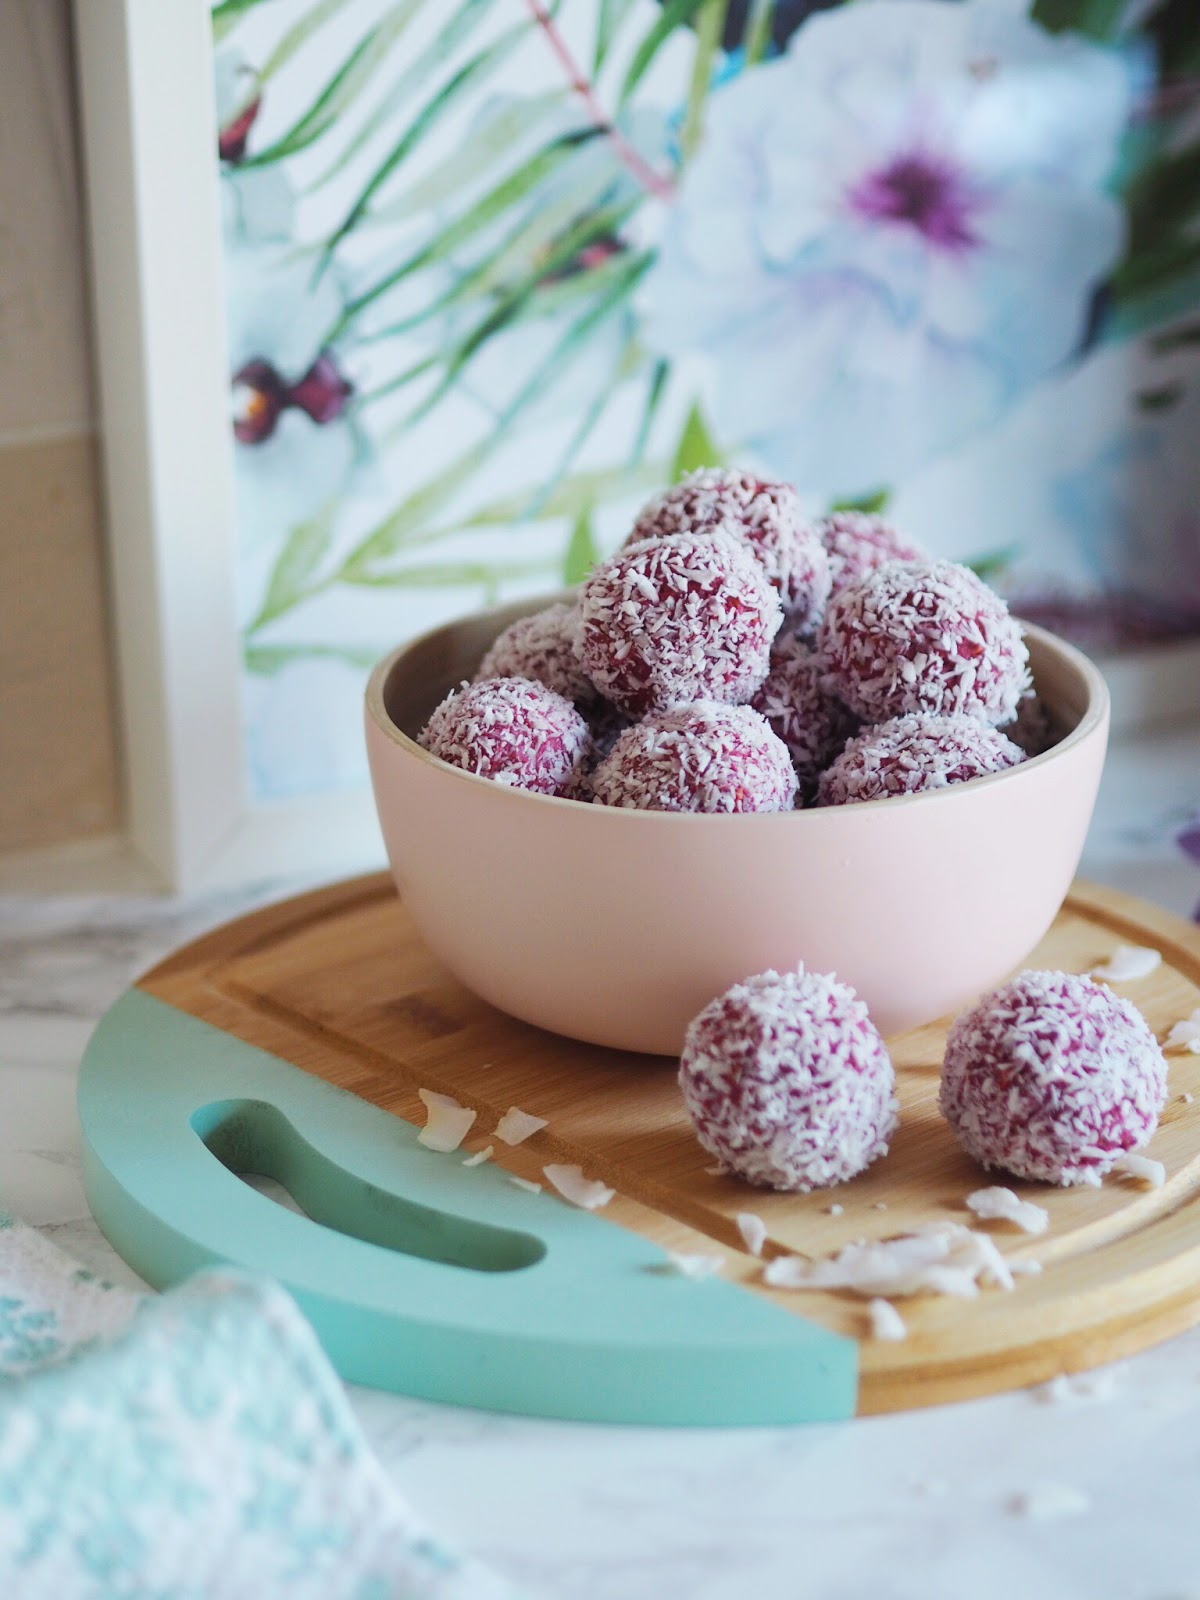 Pink Energy balls on wood board in pink bamboo bowl